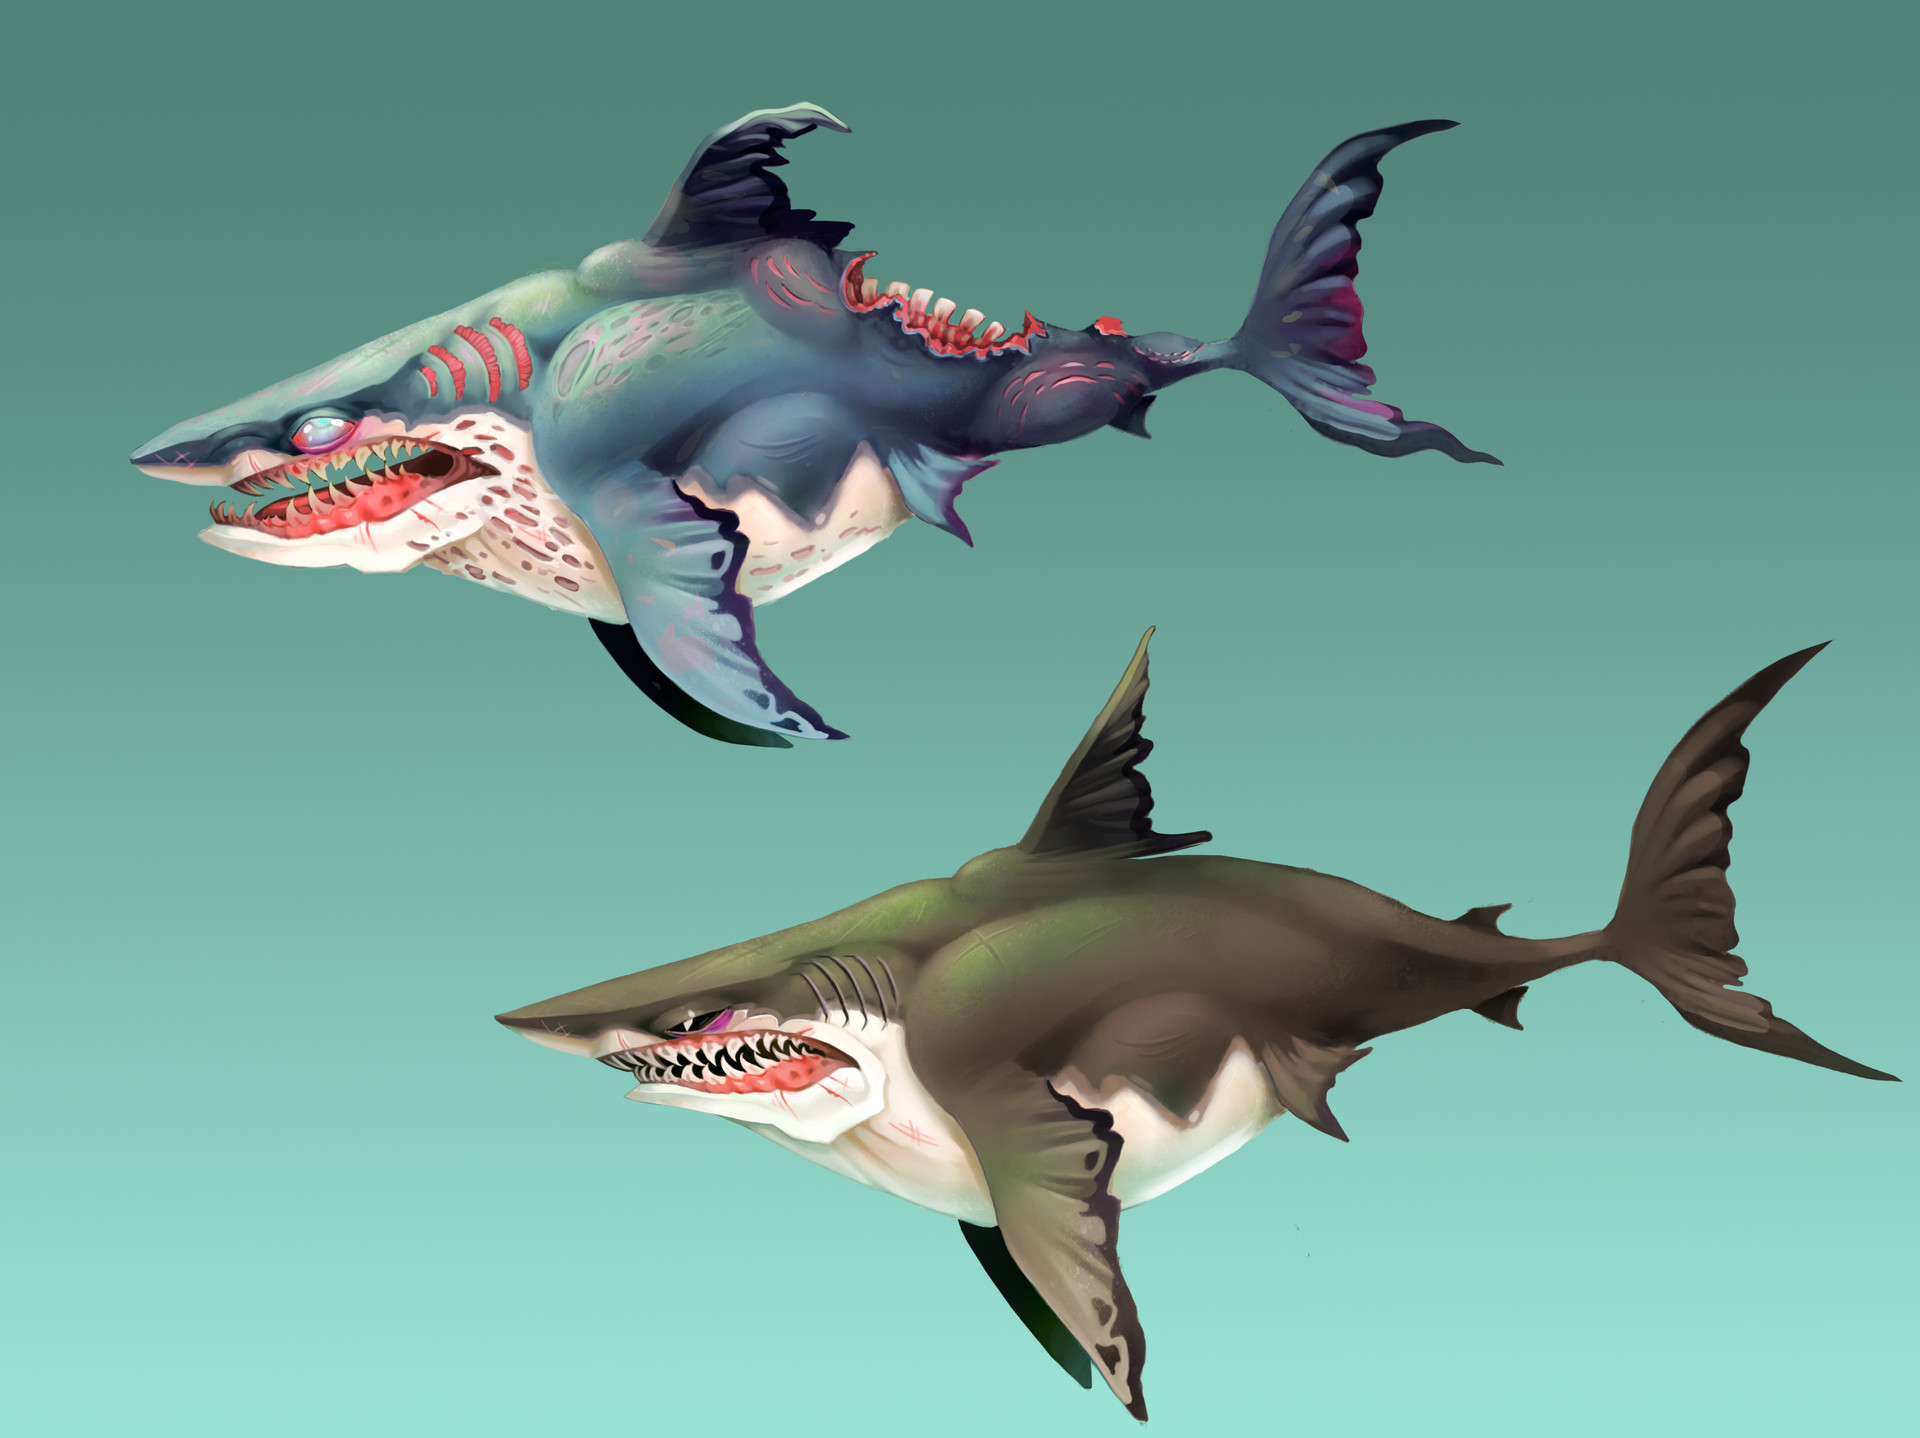 megalodon shark vs great white shark